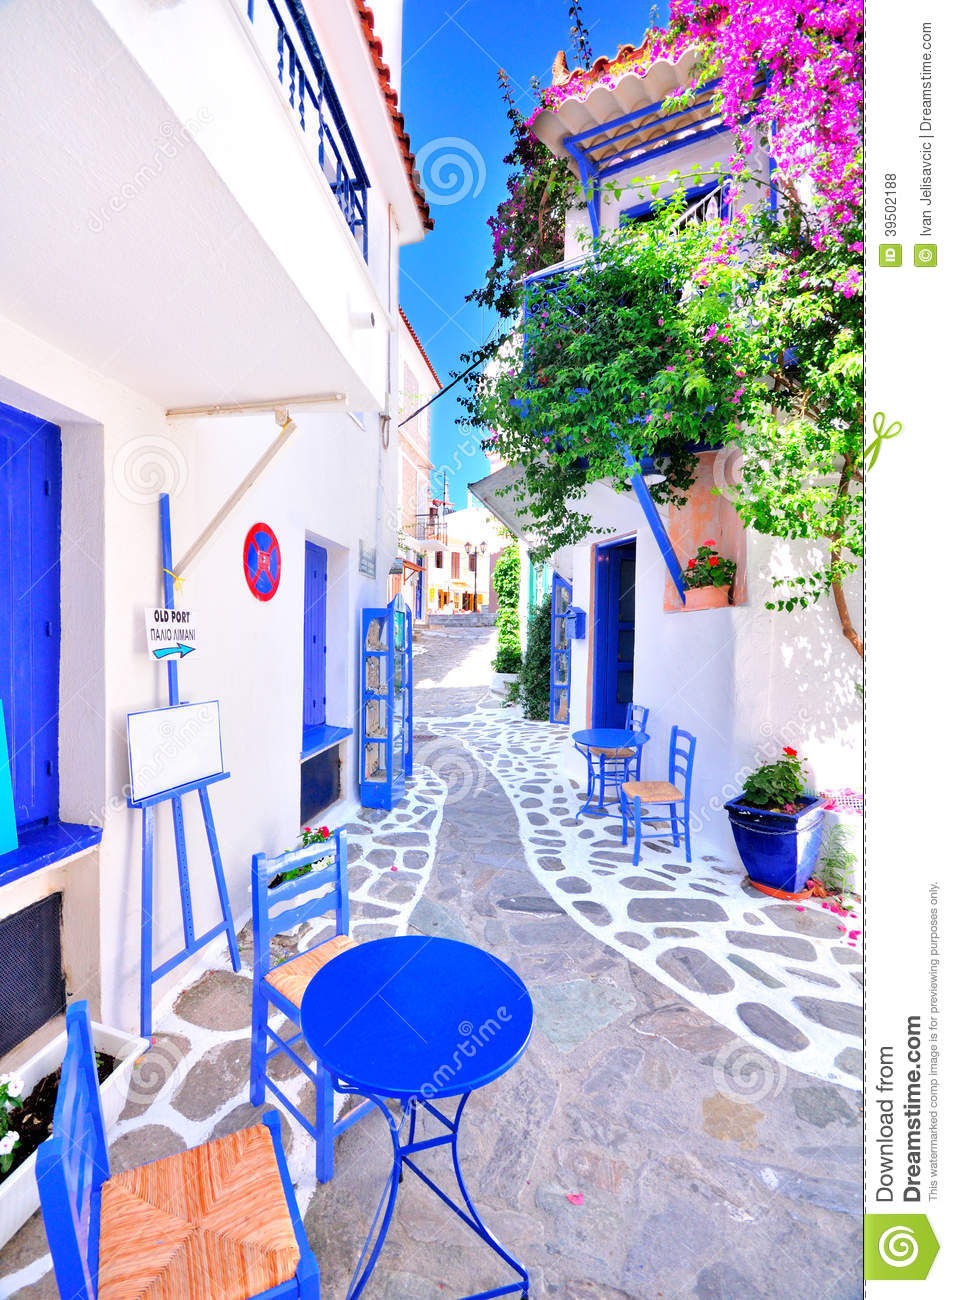 Old greek town, narrow streets, white walls, blue furniture and beautiful bougainvillea